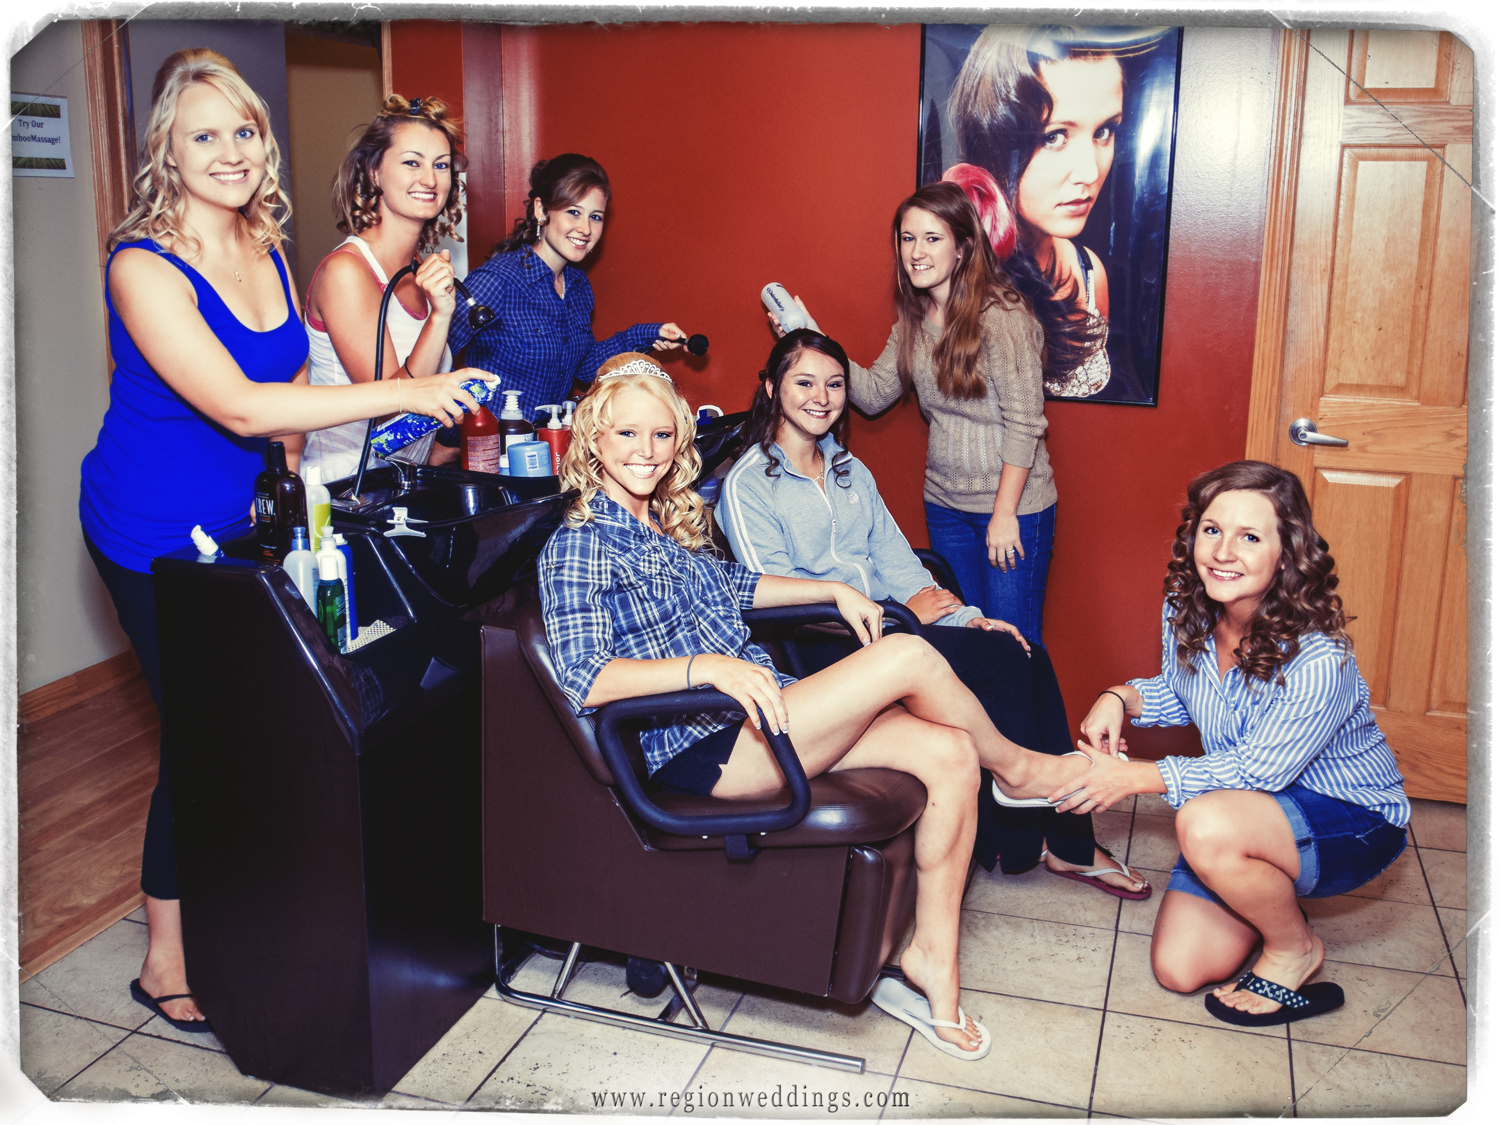 The bride and her bridesmaids gather around the washing station at Studio 4 hair salon in this fun, retro styled wedding photo.